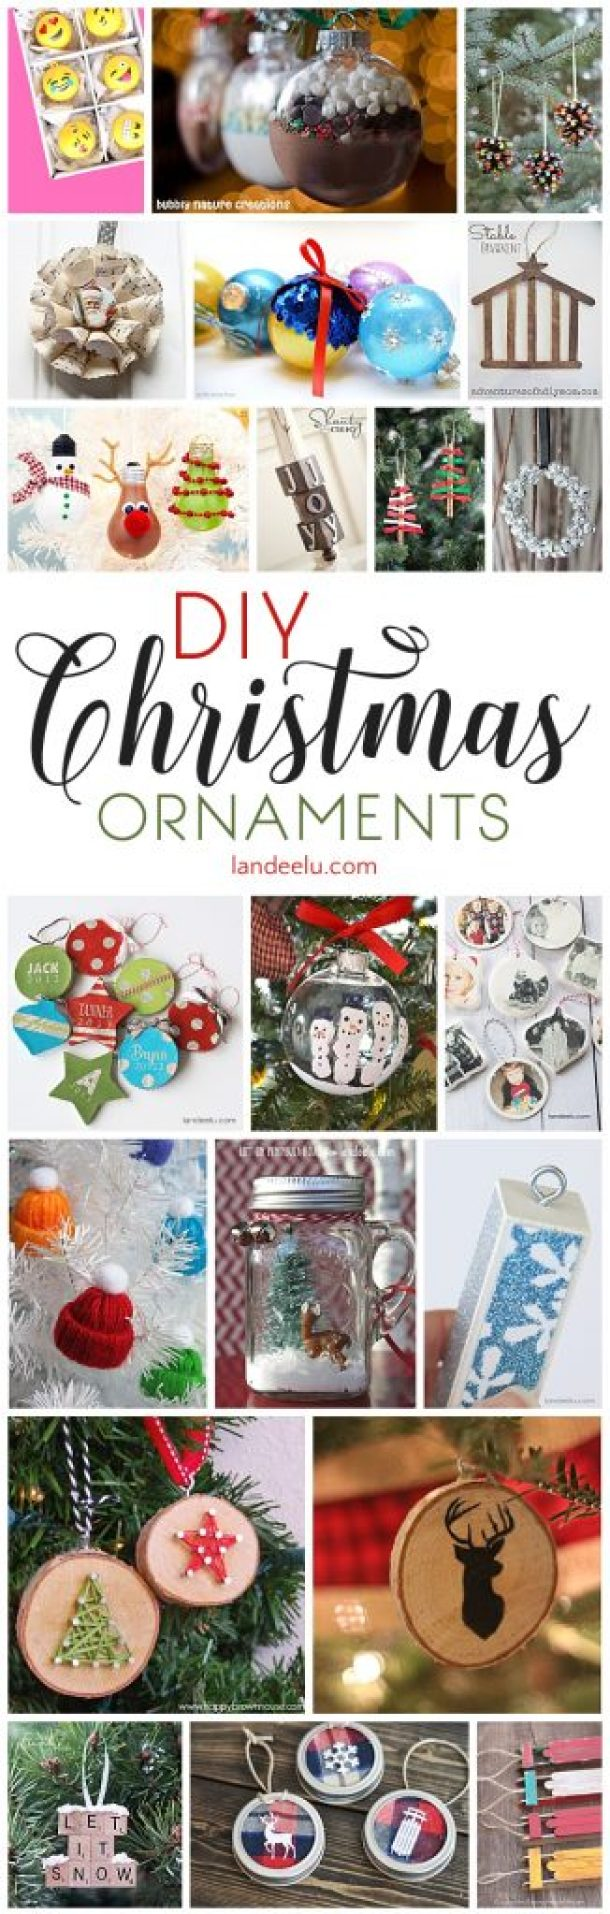 DIY Christmas Ornaments to Make!